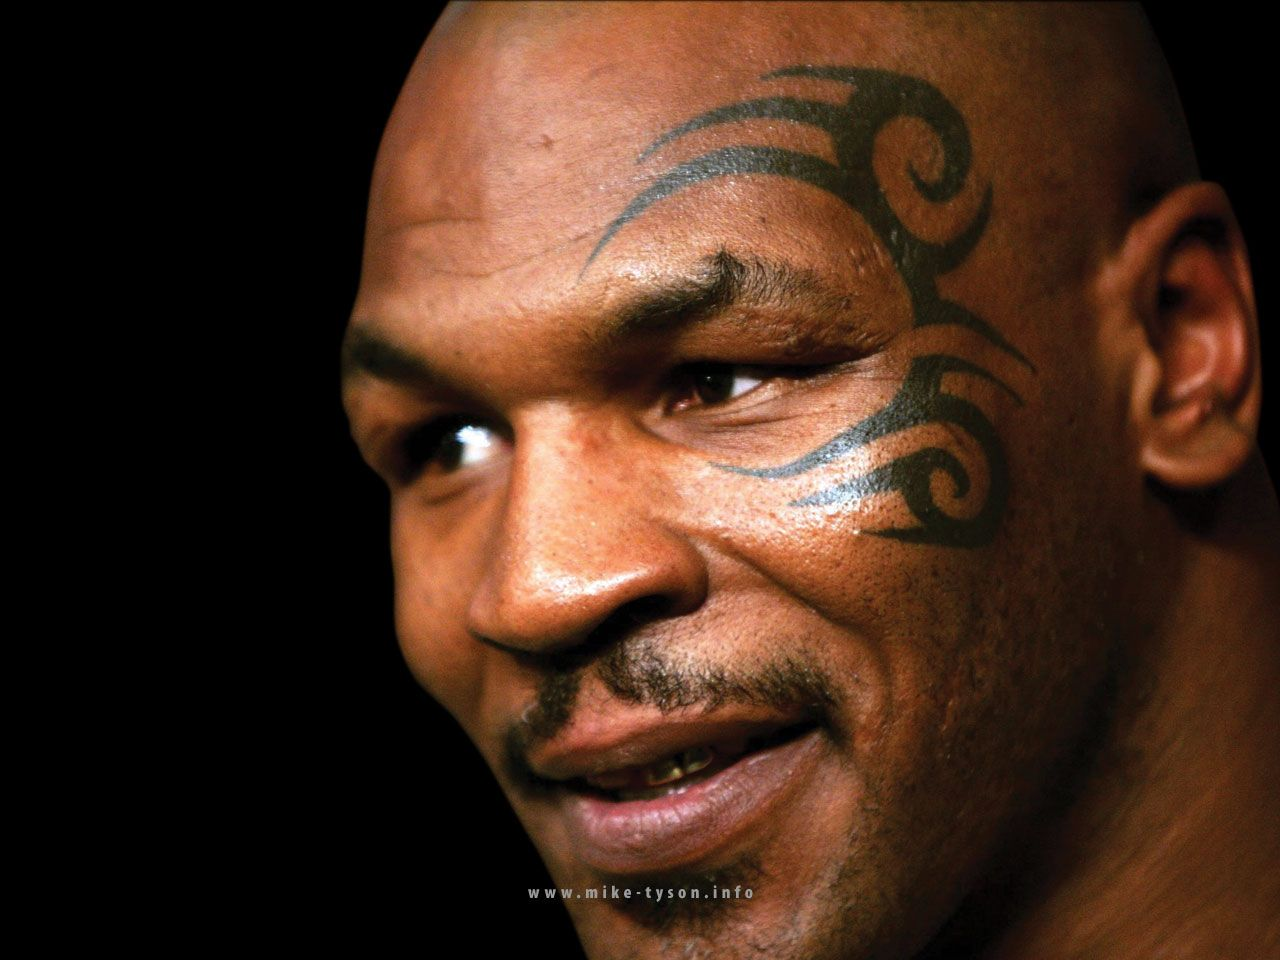 Mike Tyson Face Tattoo Photo Gallery ~